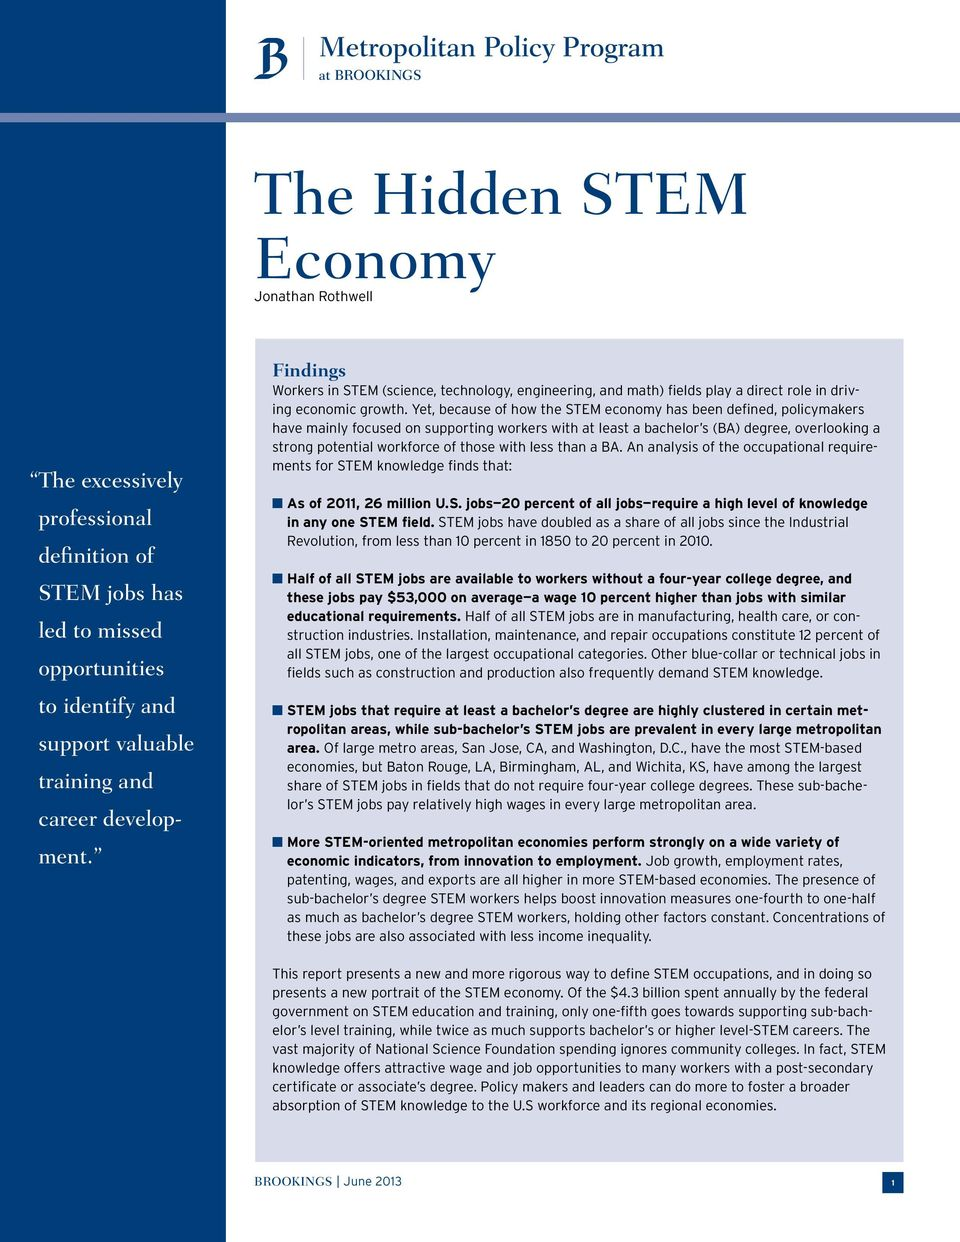 Yet, because of how the STEM economy has been defined, policymakers have mainly focused on supporting workers with at least a bachelor s (BA) degree, overlooking a strong potential workforce of those